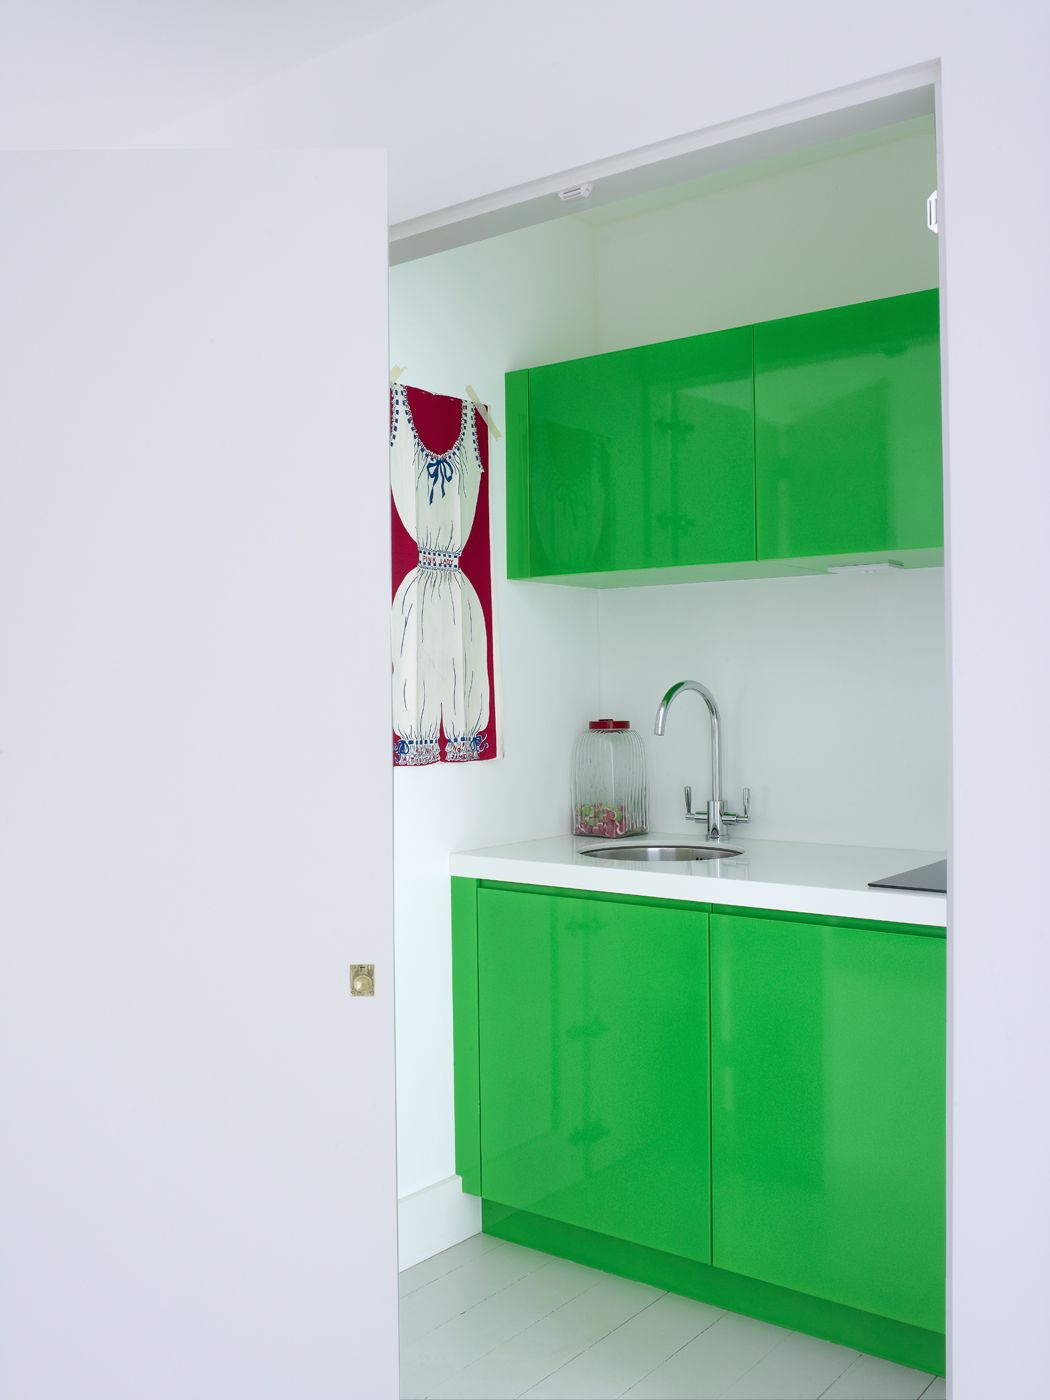 Bright Green And White Are Refreshing In The Kitchen Like The